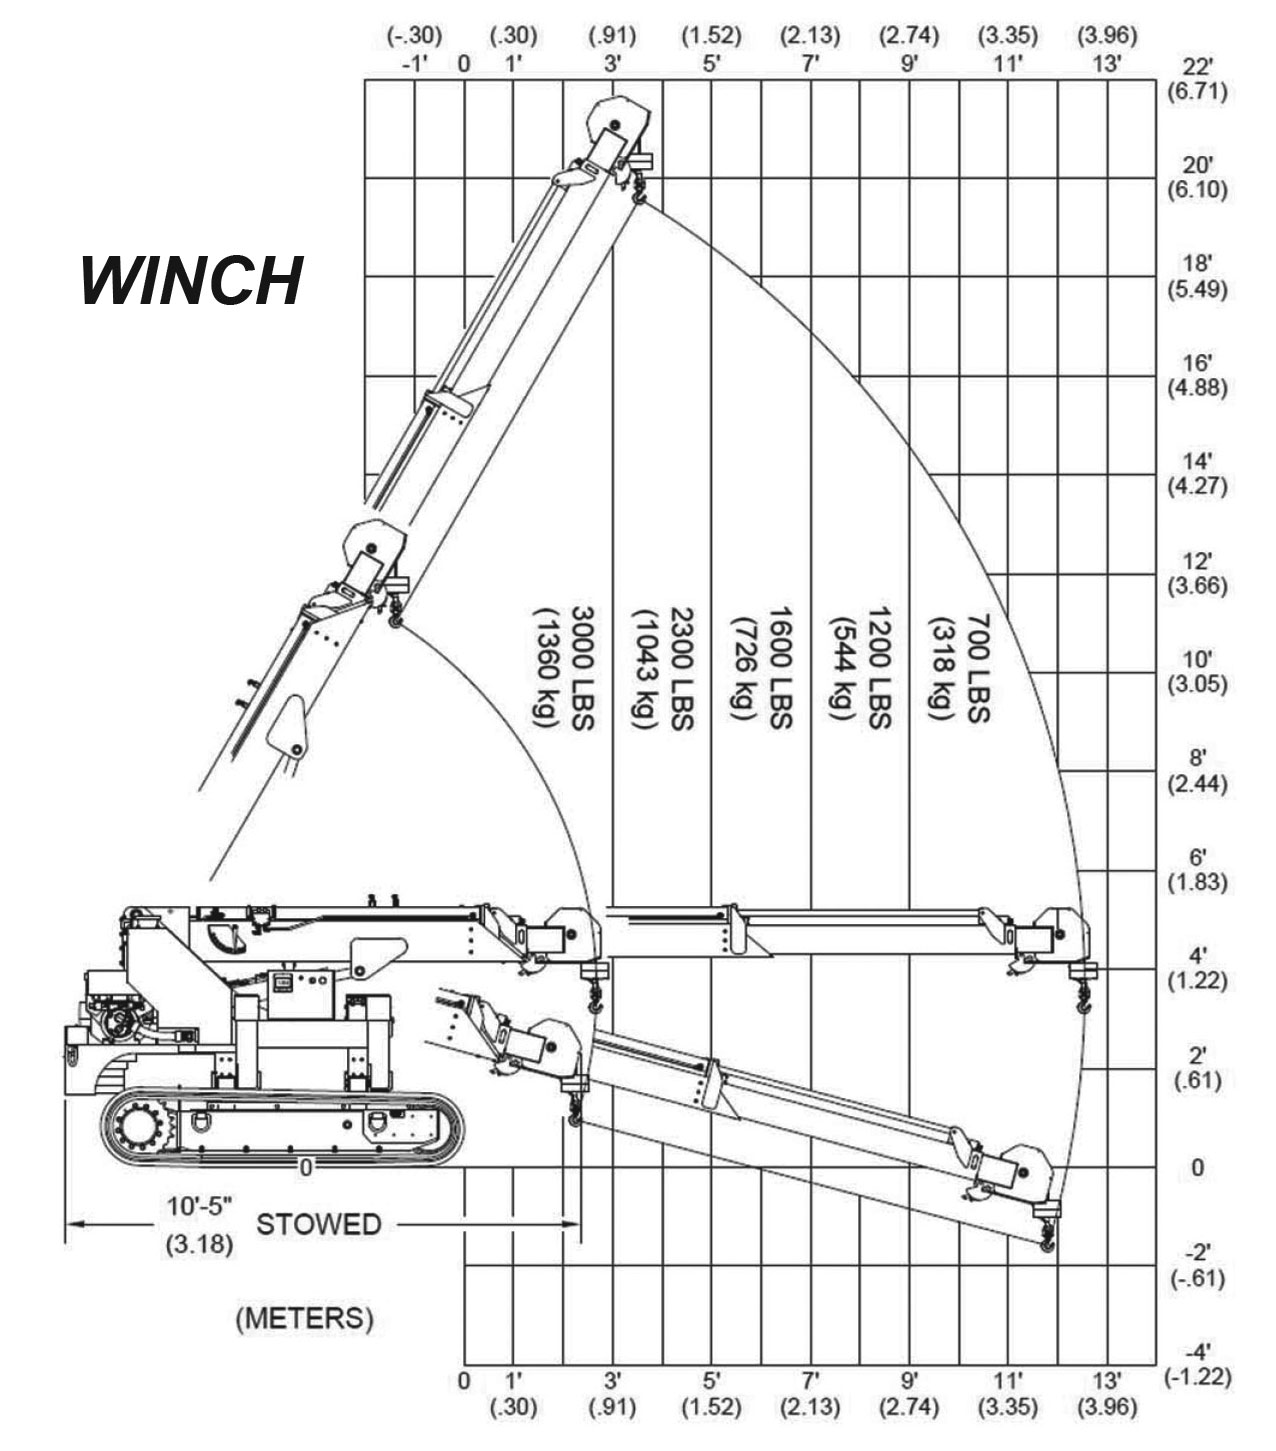 Brandon Trax Winch Load Capacity